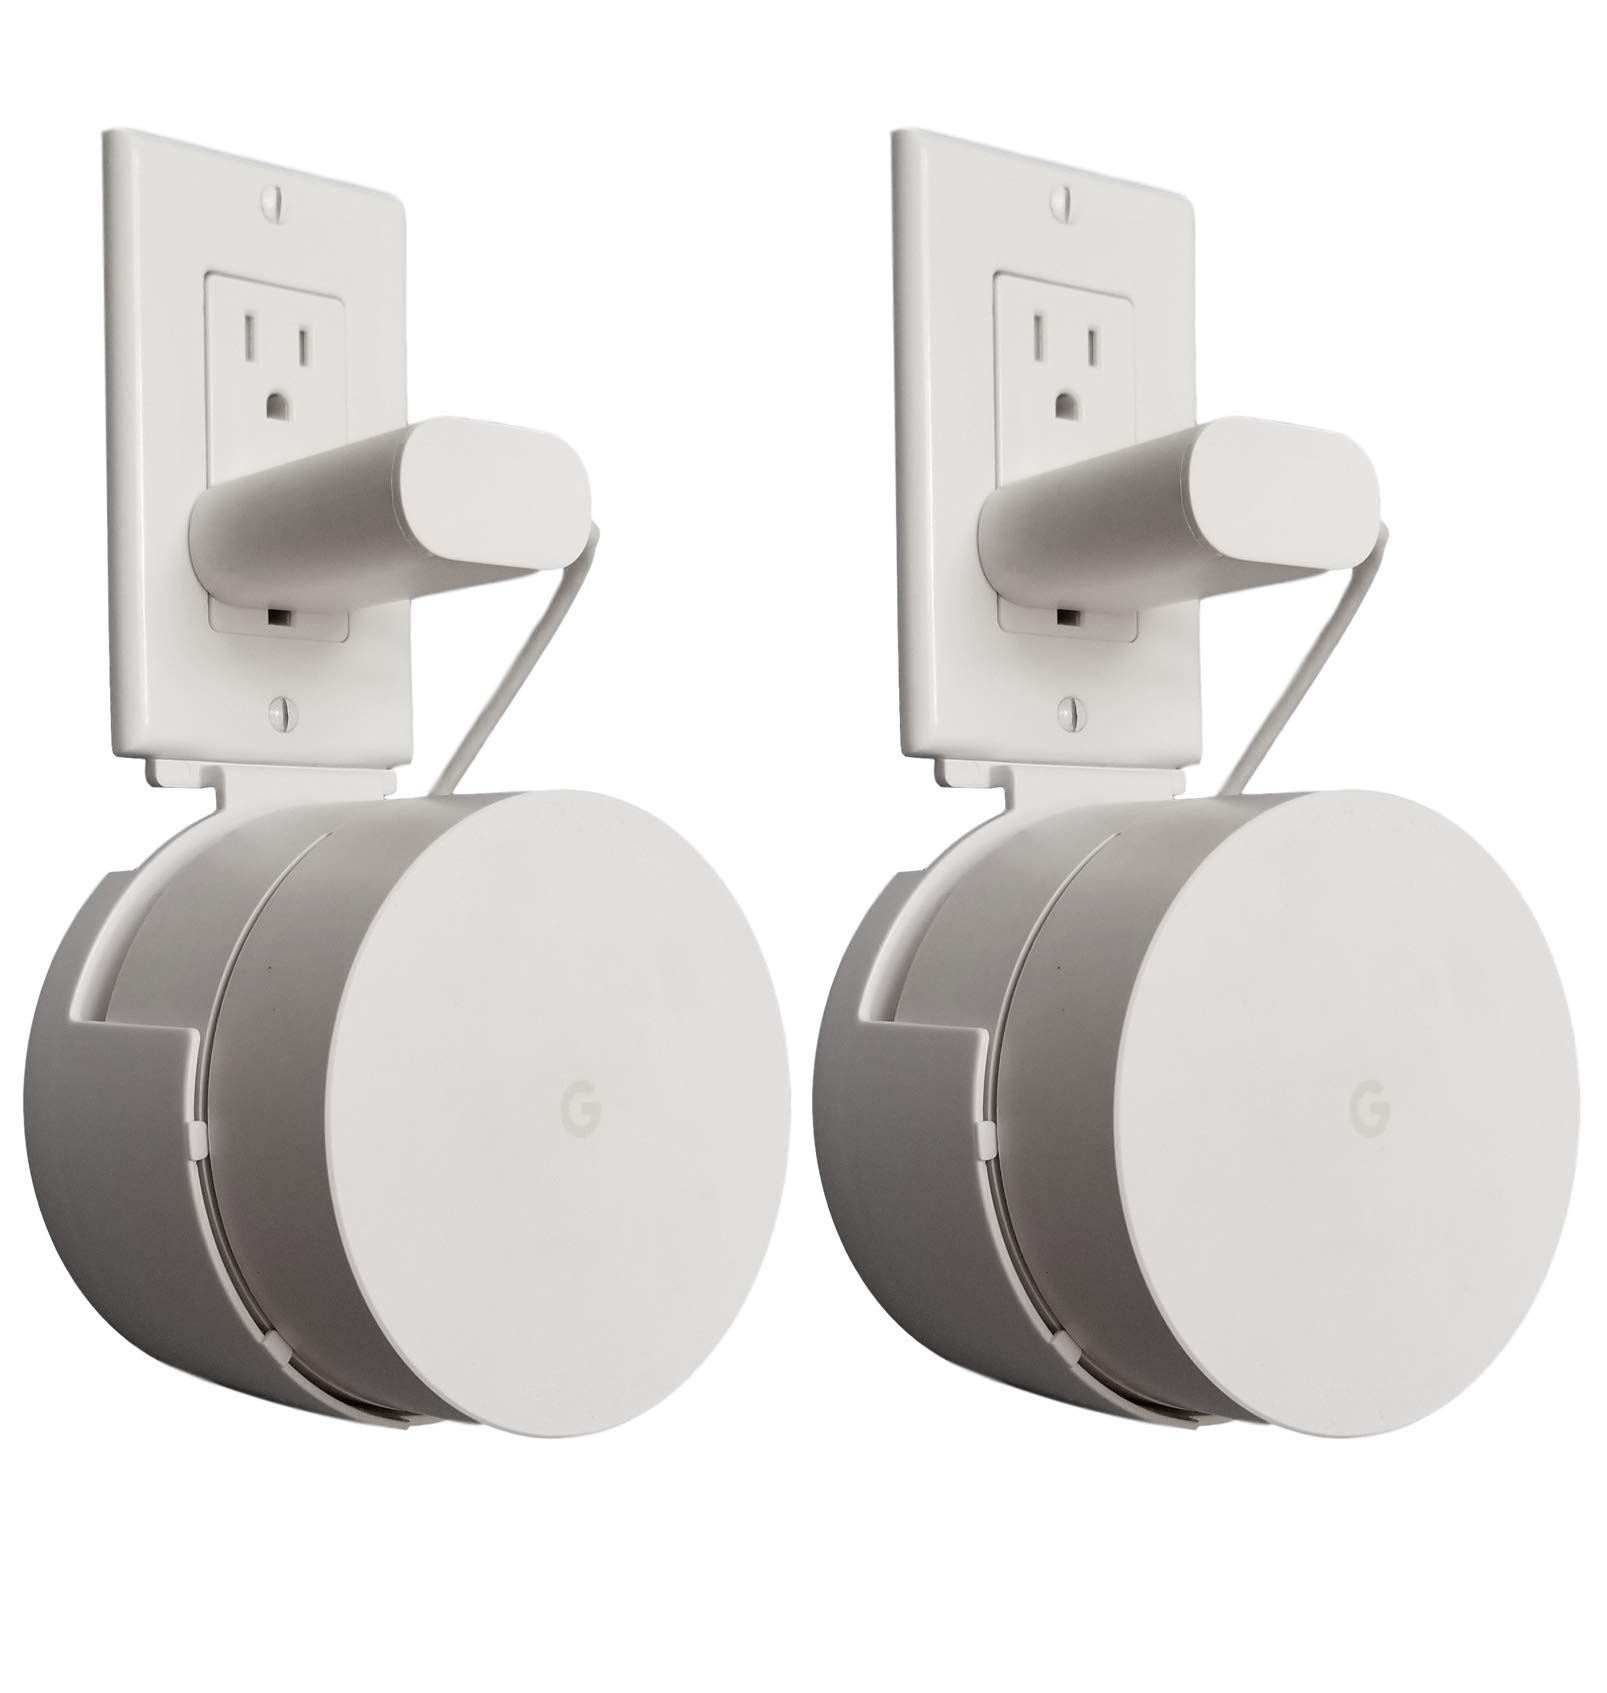 Dot Genie Google WiFi Outlet Holder Mount [Pro Version]: The Strongest, Most Versatile and Attractive Mount Stand Holder for Google WiFi. Great for Home and Businesses! Still No Screws! (2-Pack) by Dot Genie